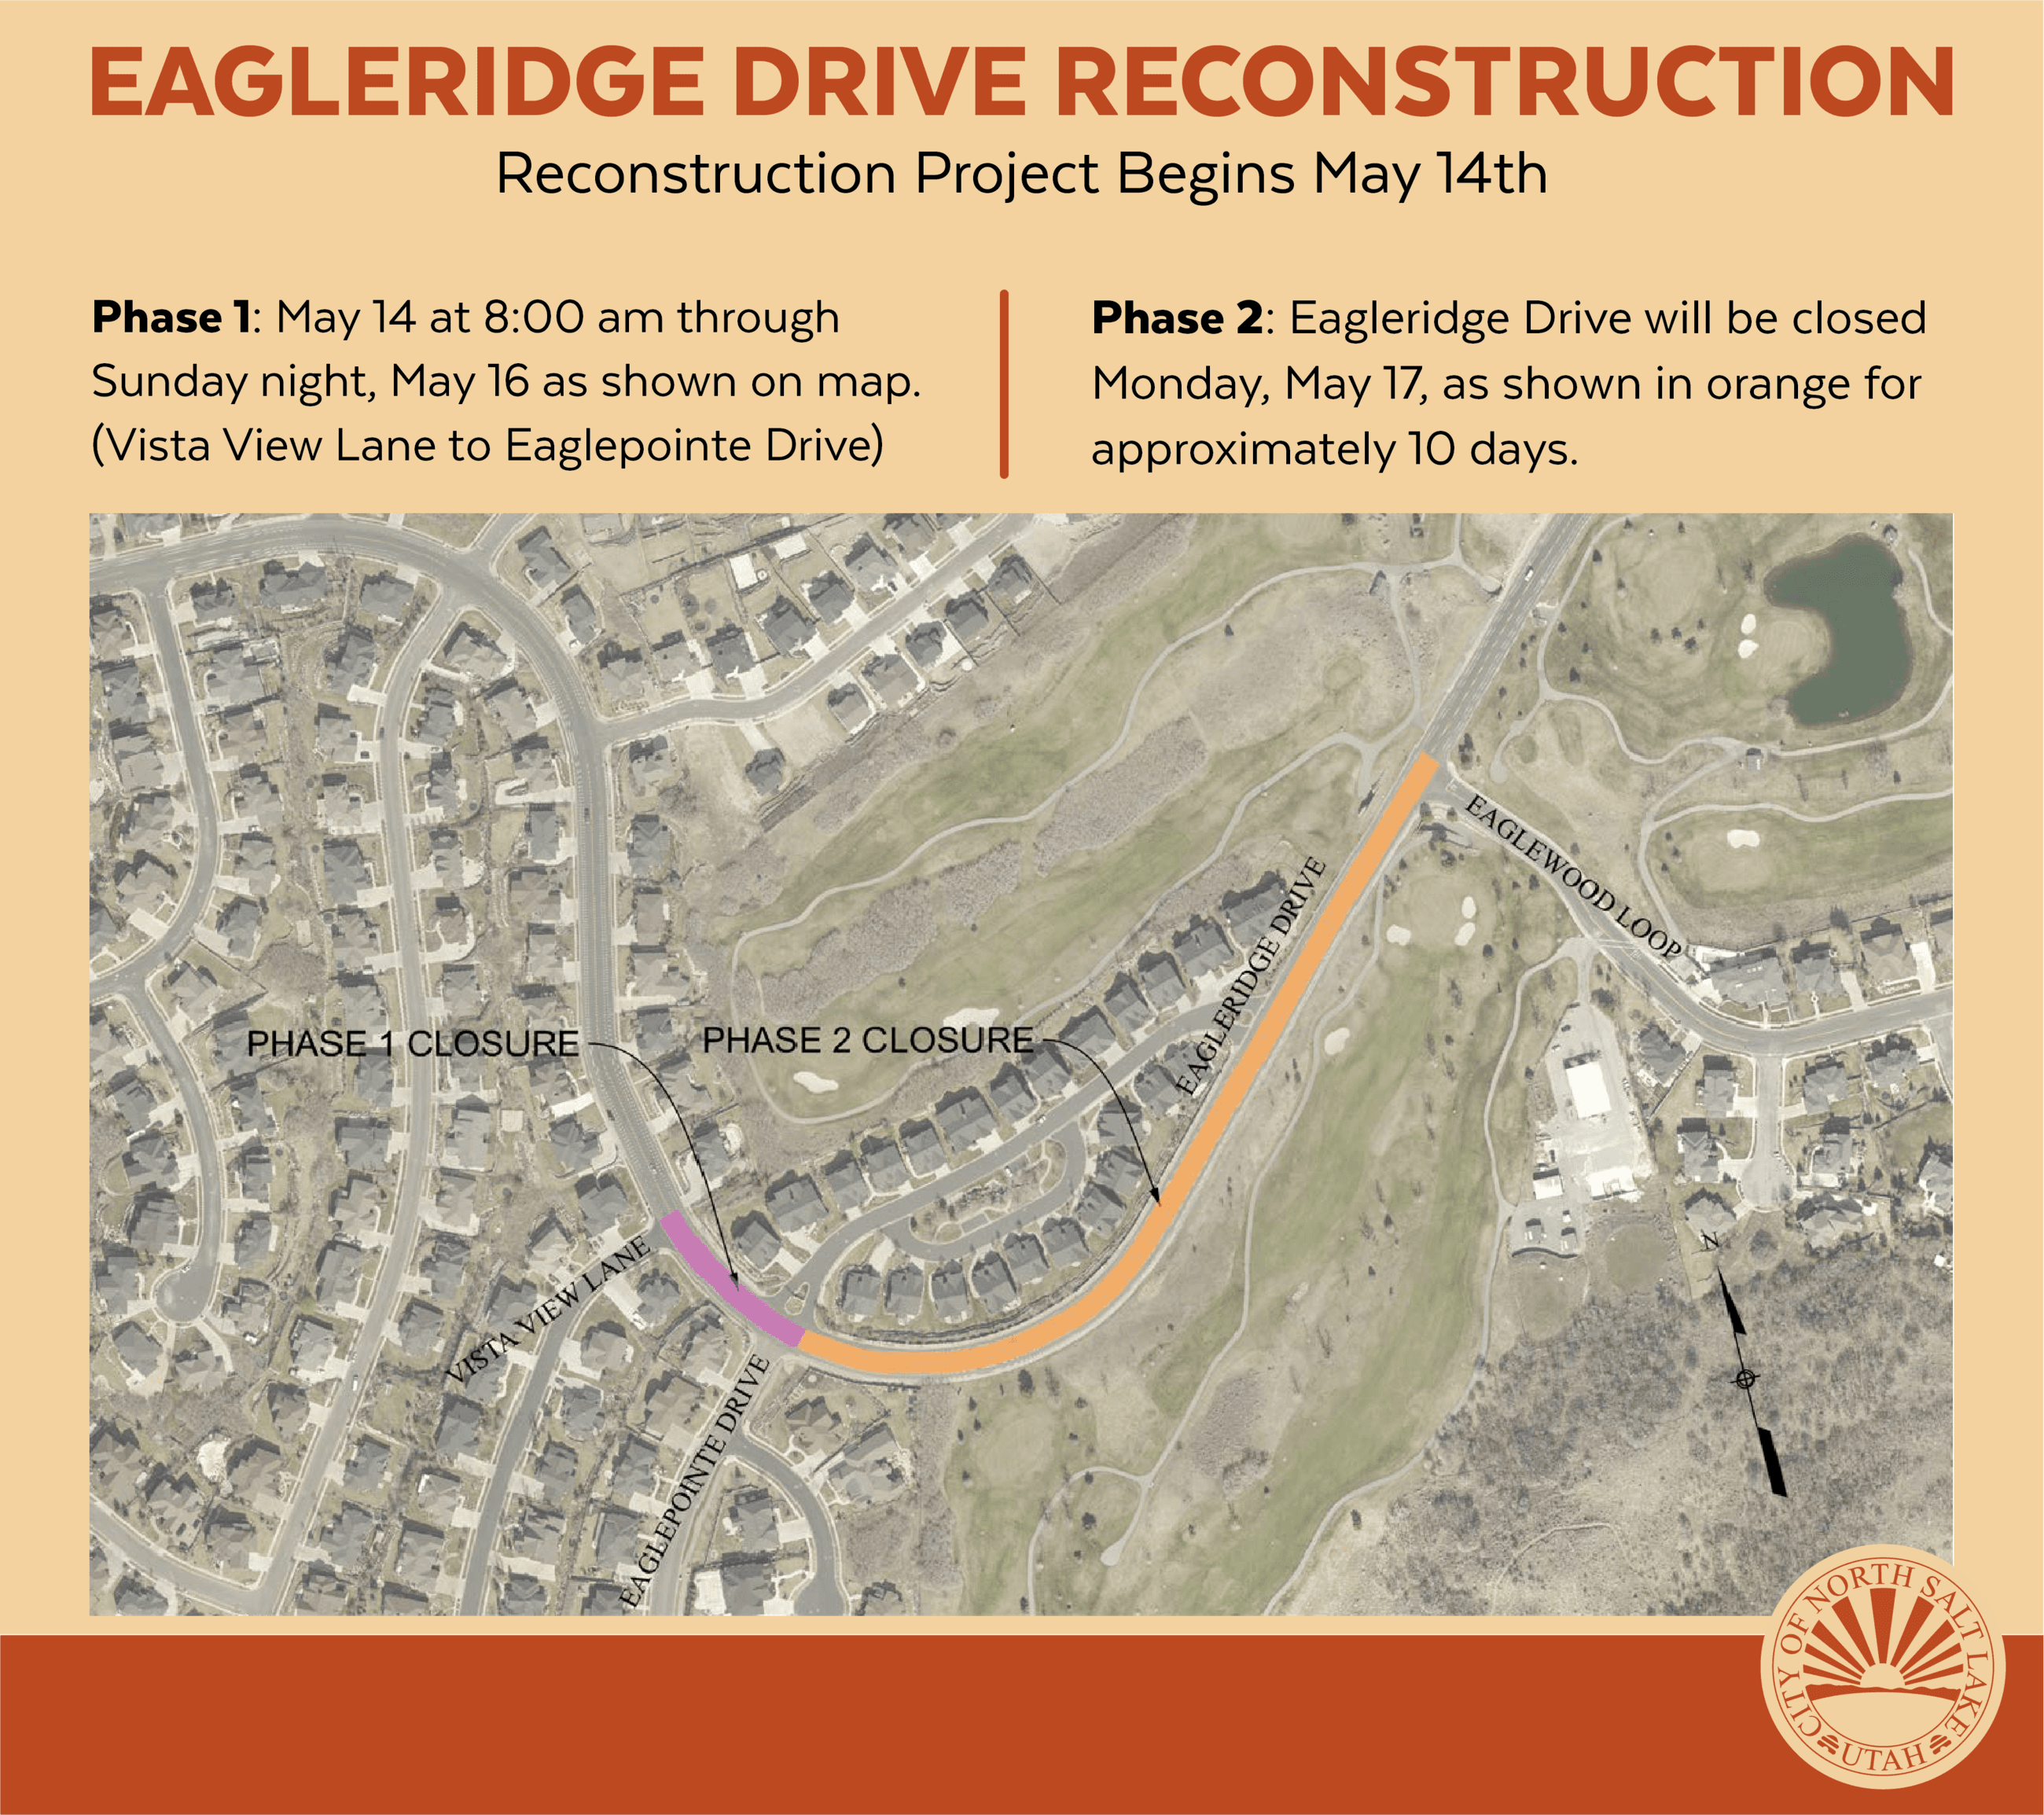 Eagleridge Dr Reconstruction Instagram map closure phases May 2021